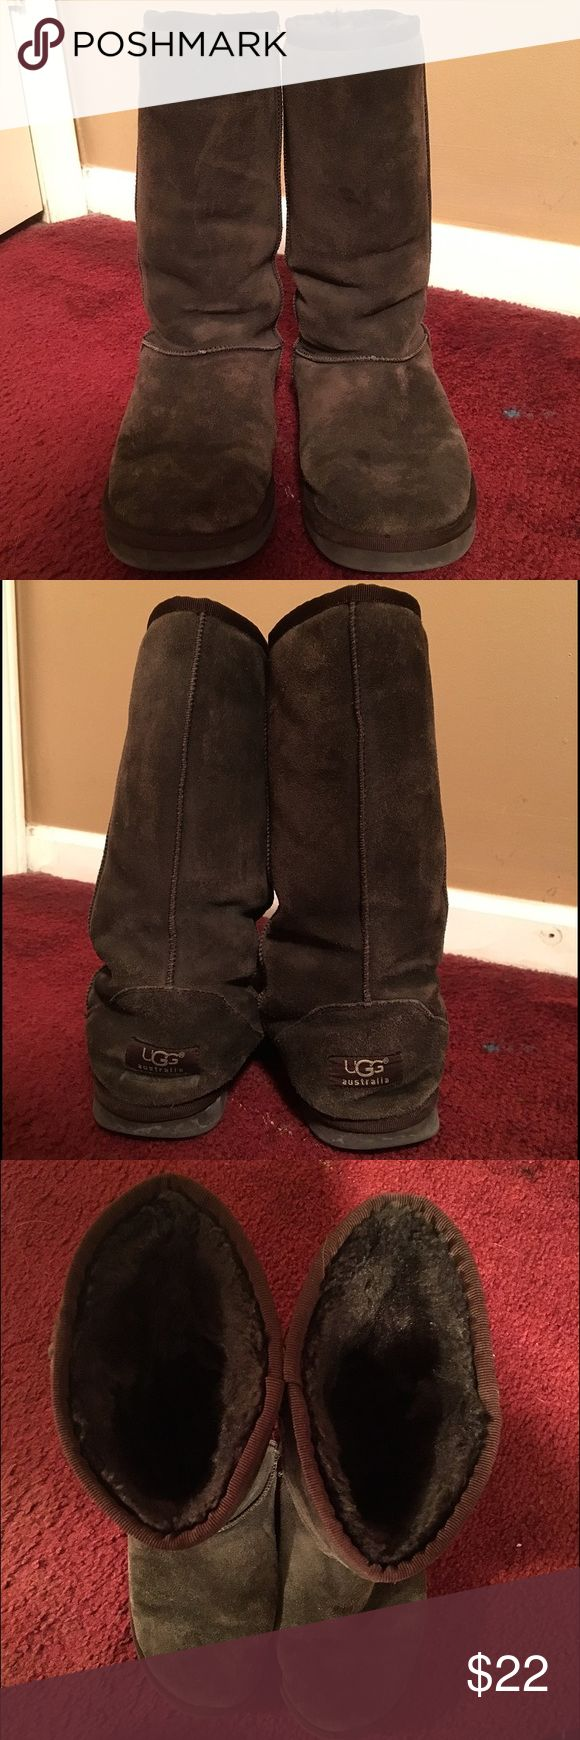 Brown UGG Boots Classic Tall Chocolate (brown) colored UGG boots. Previously owned but still in good condition. Chocolate color has faded a little bit - can see in pictures. Original box included. No trades! UGG Shoes Winter & Rain Boots